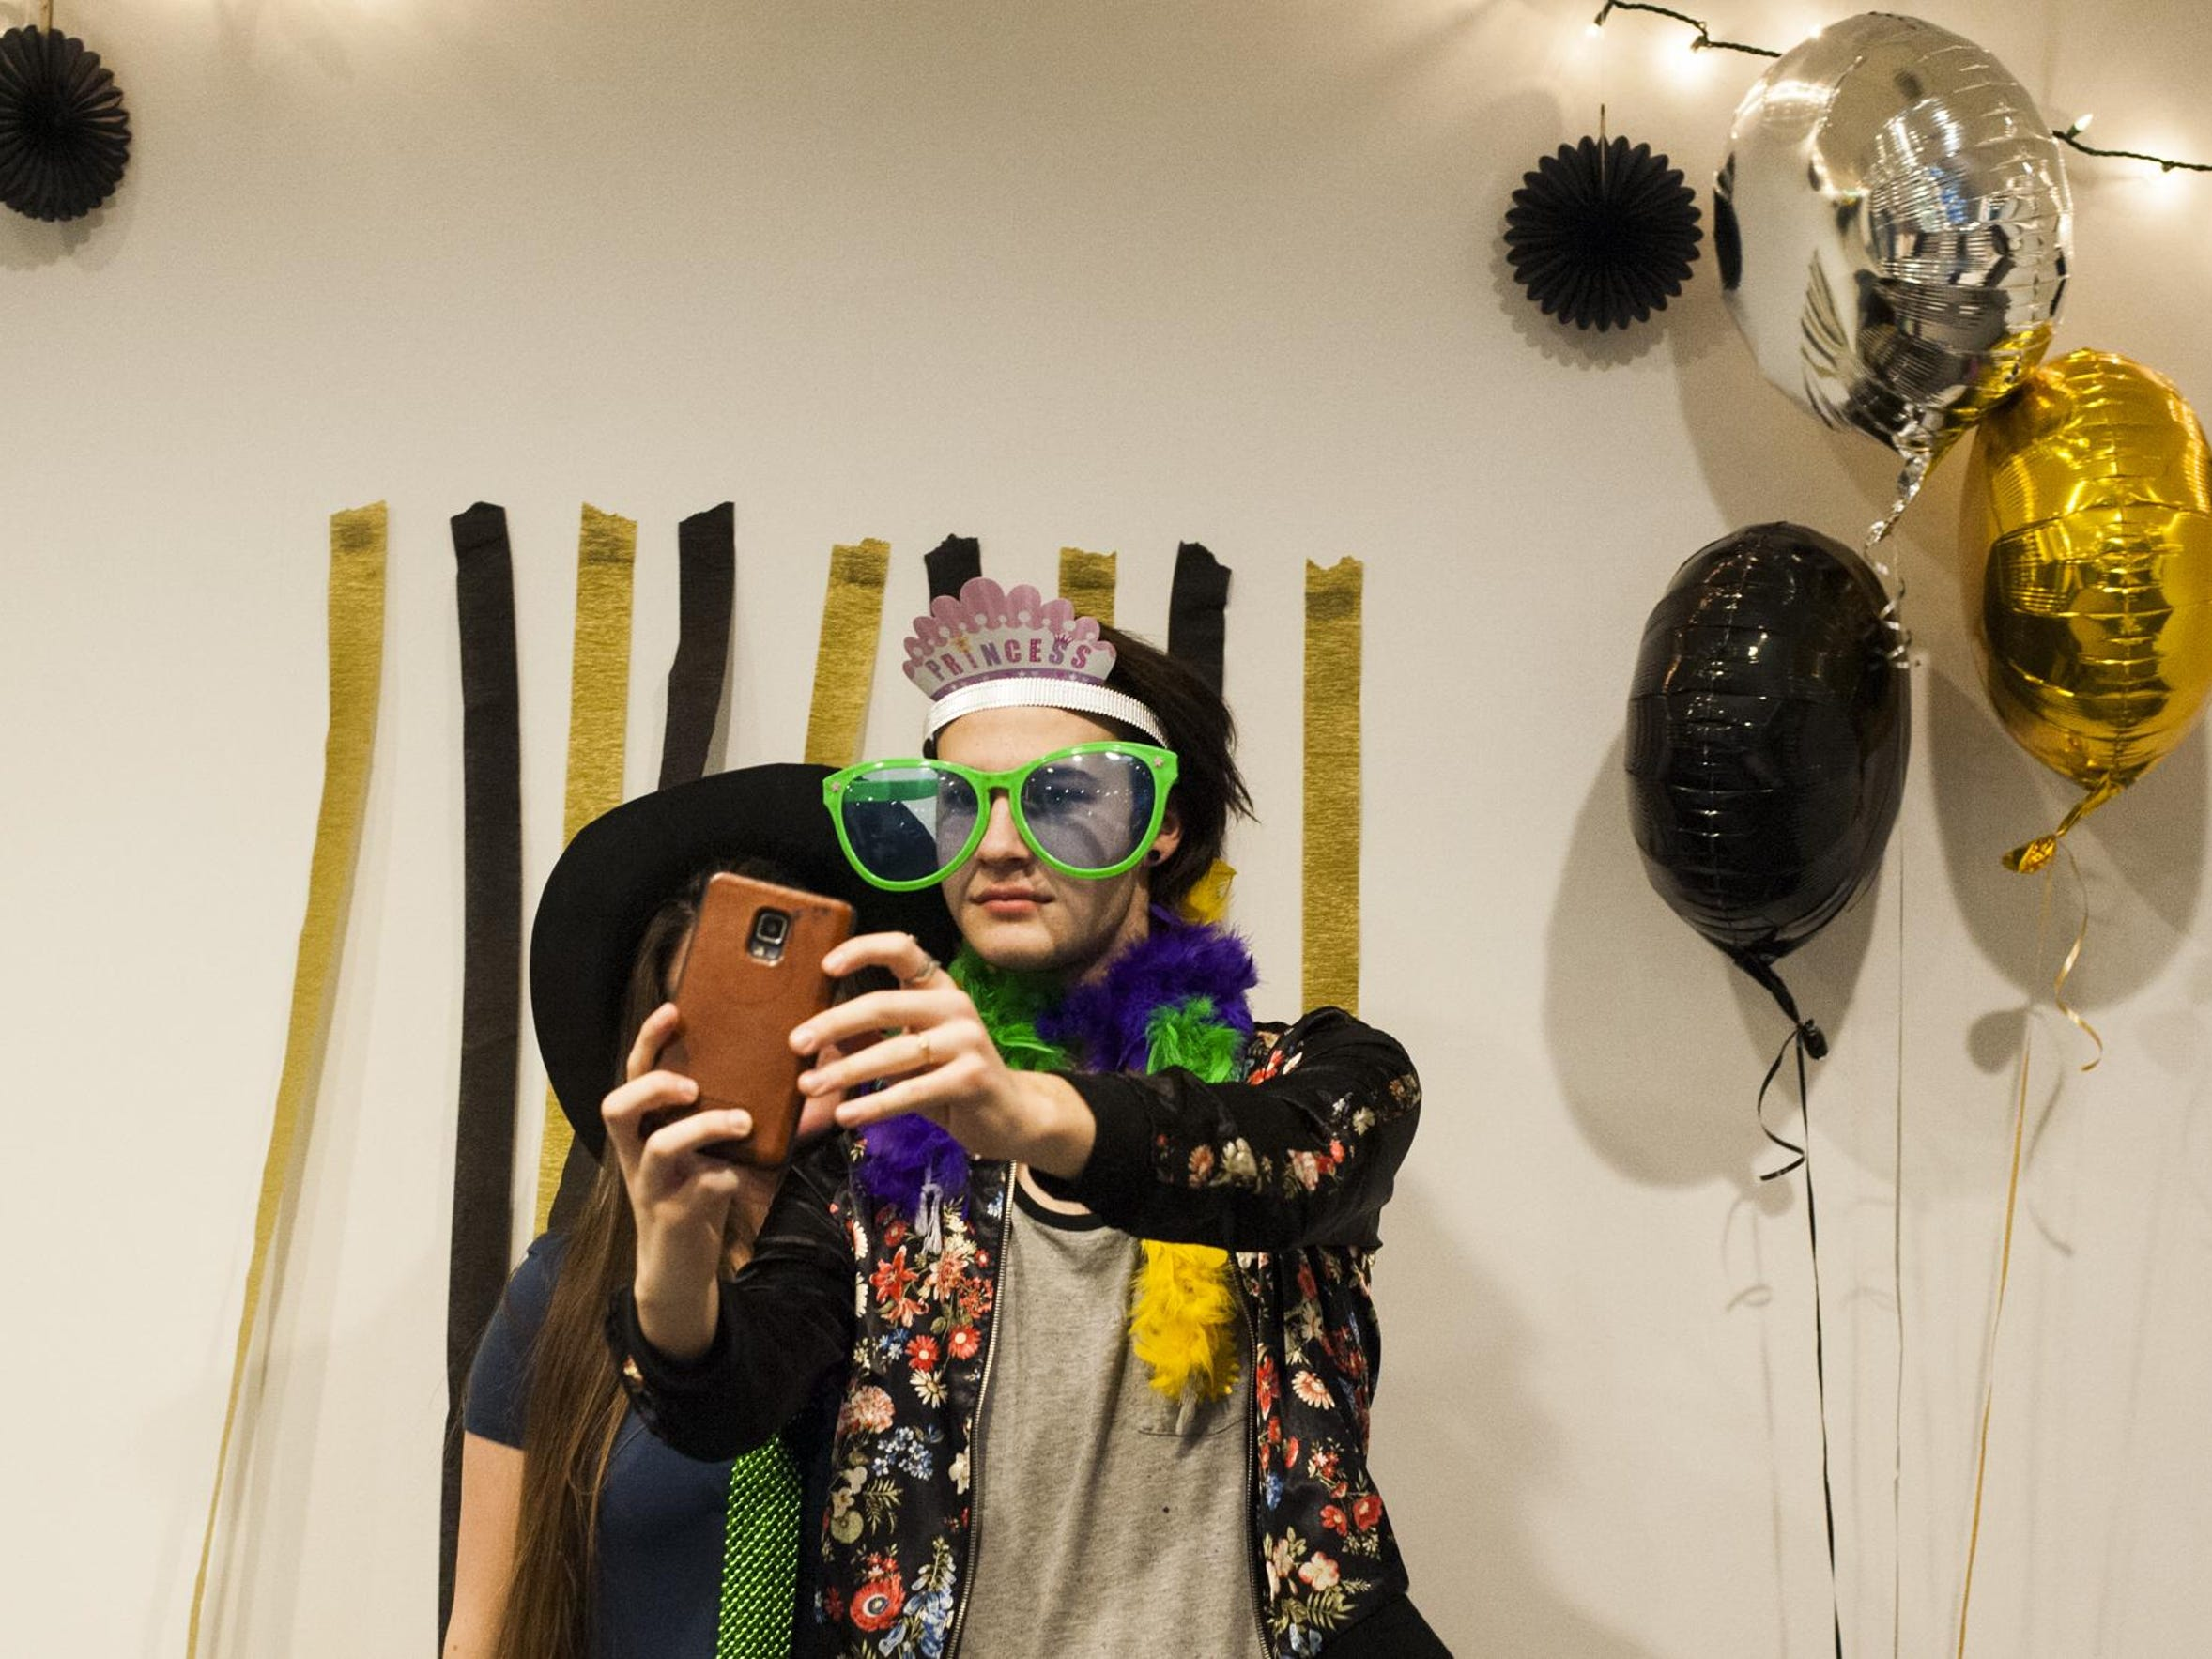 Echo Sundstrom, adorned with photo booth props, takes